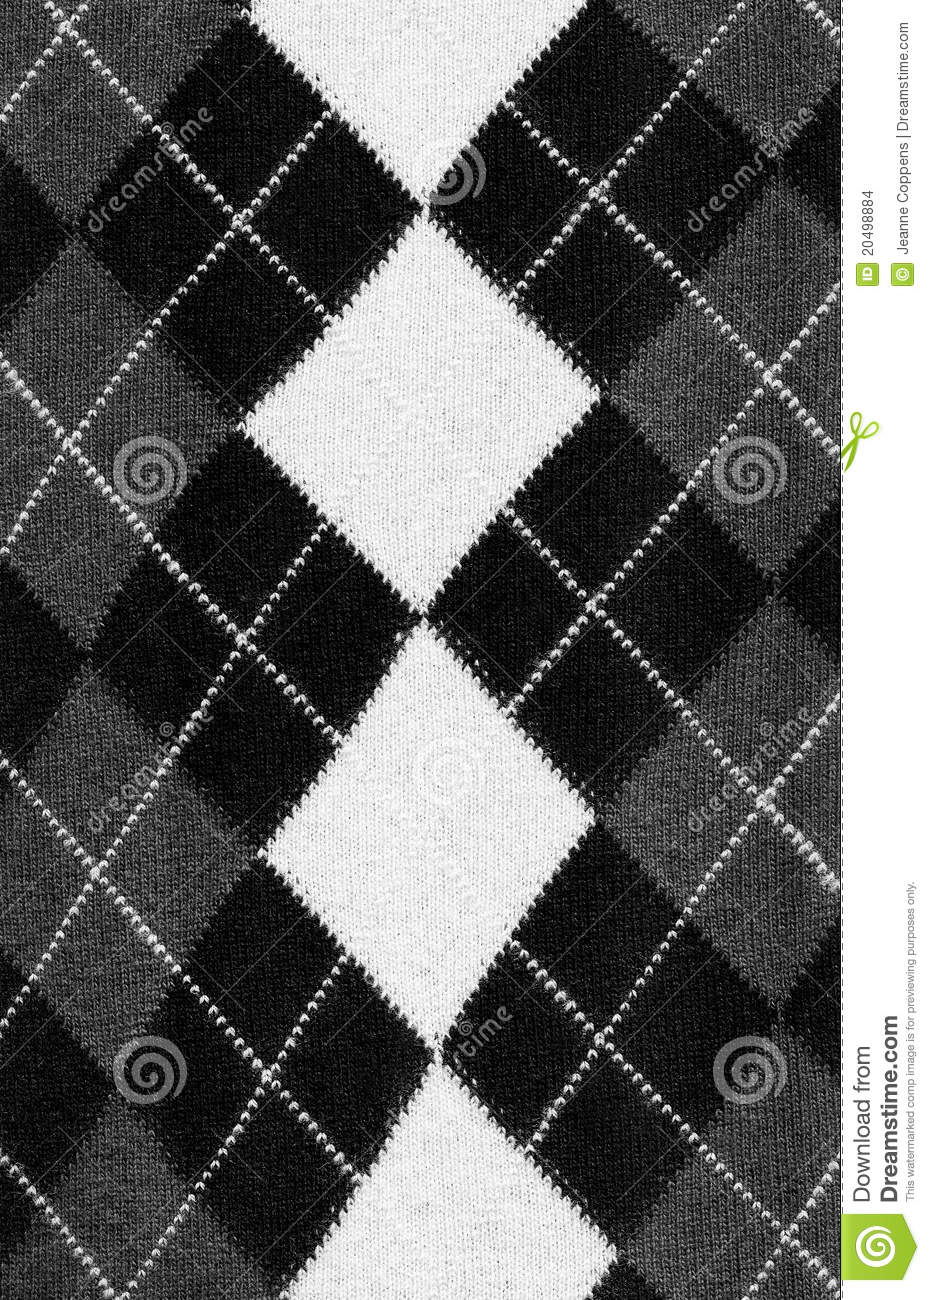 e35bd6af1 Classic sweater pattern. stock photo. Image of background - 20498884